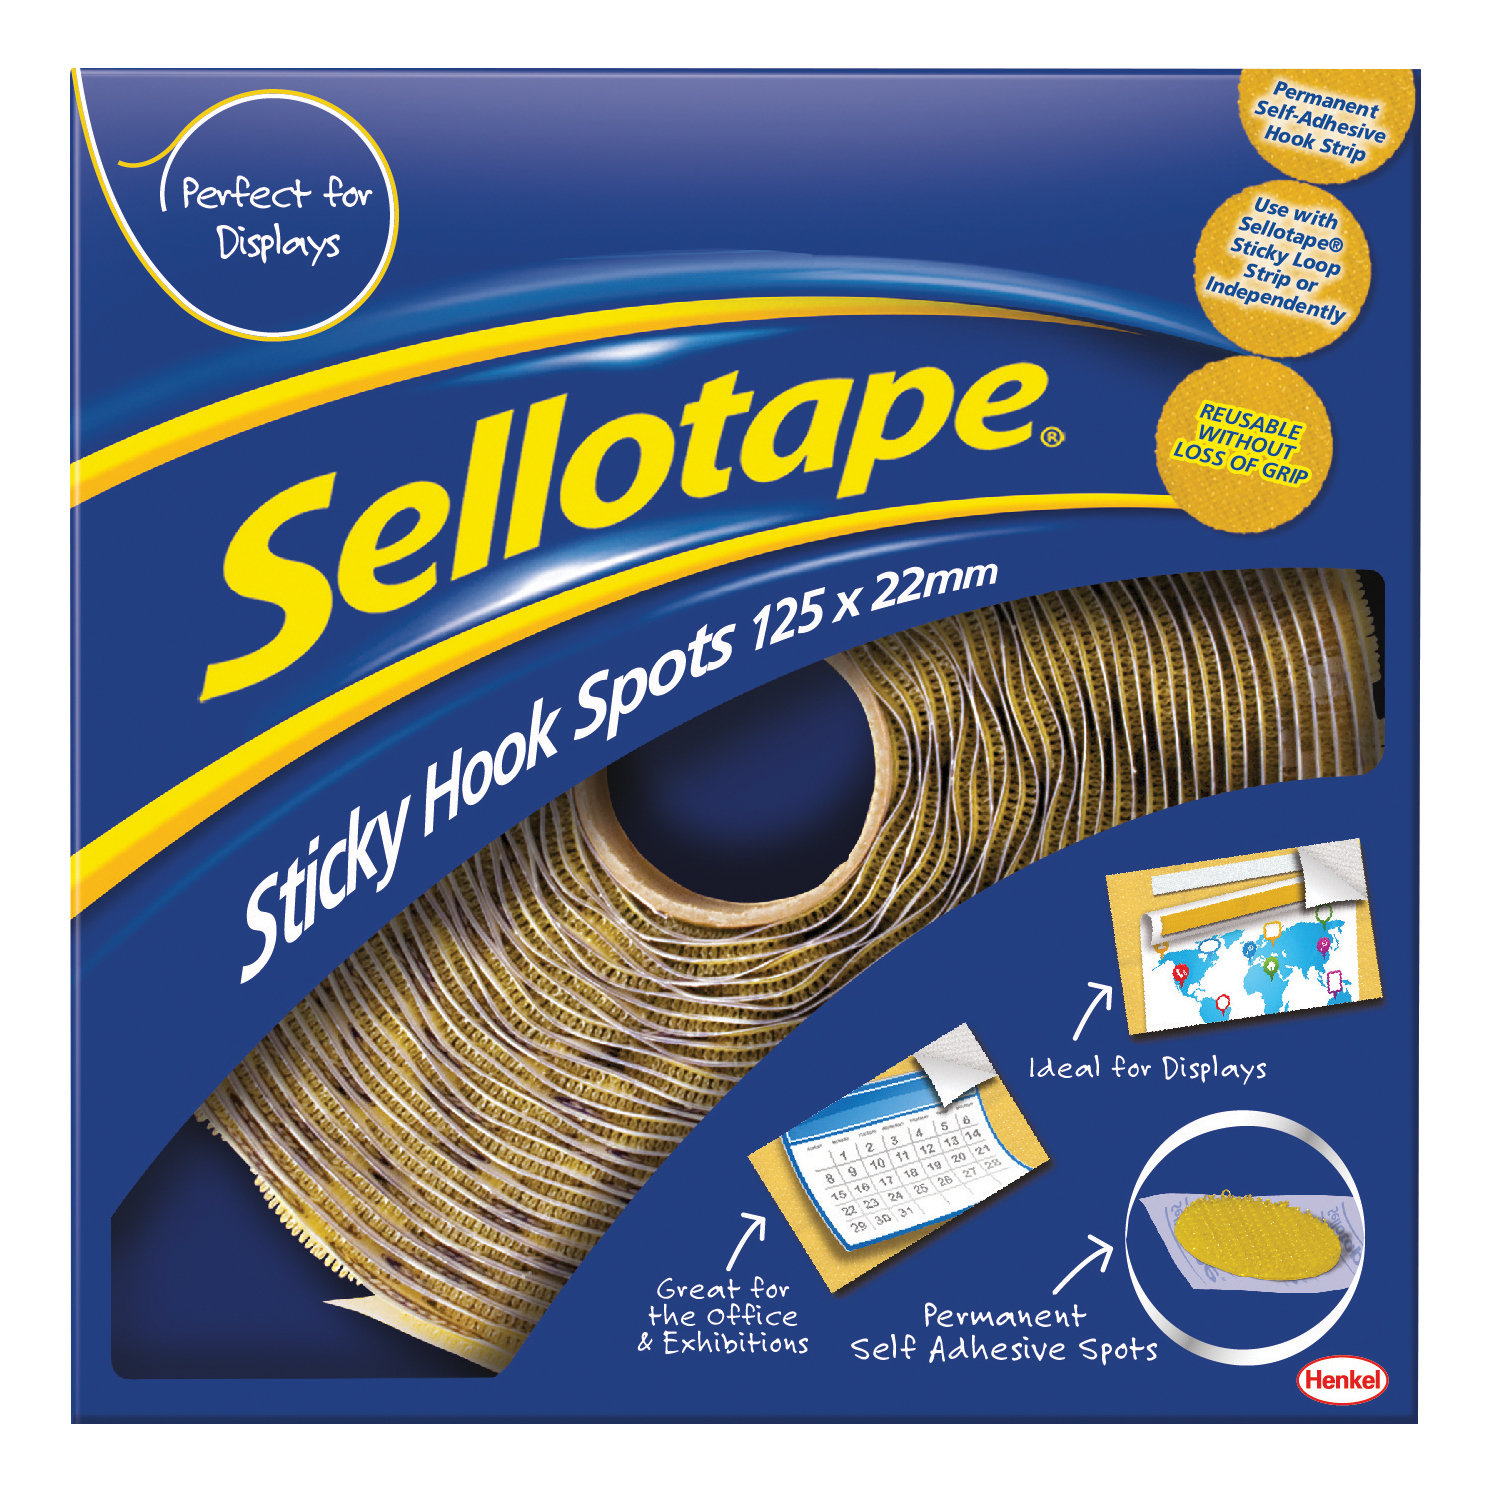 Accessories Sellotape Permanent Sticky Hook Spots in Handy Dispenser of 125 Spots Diameter 22mm Yellow Ref 1445185